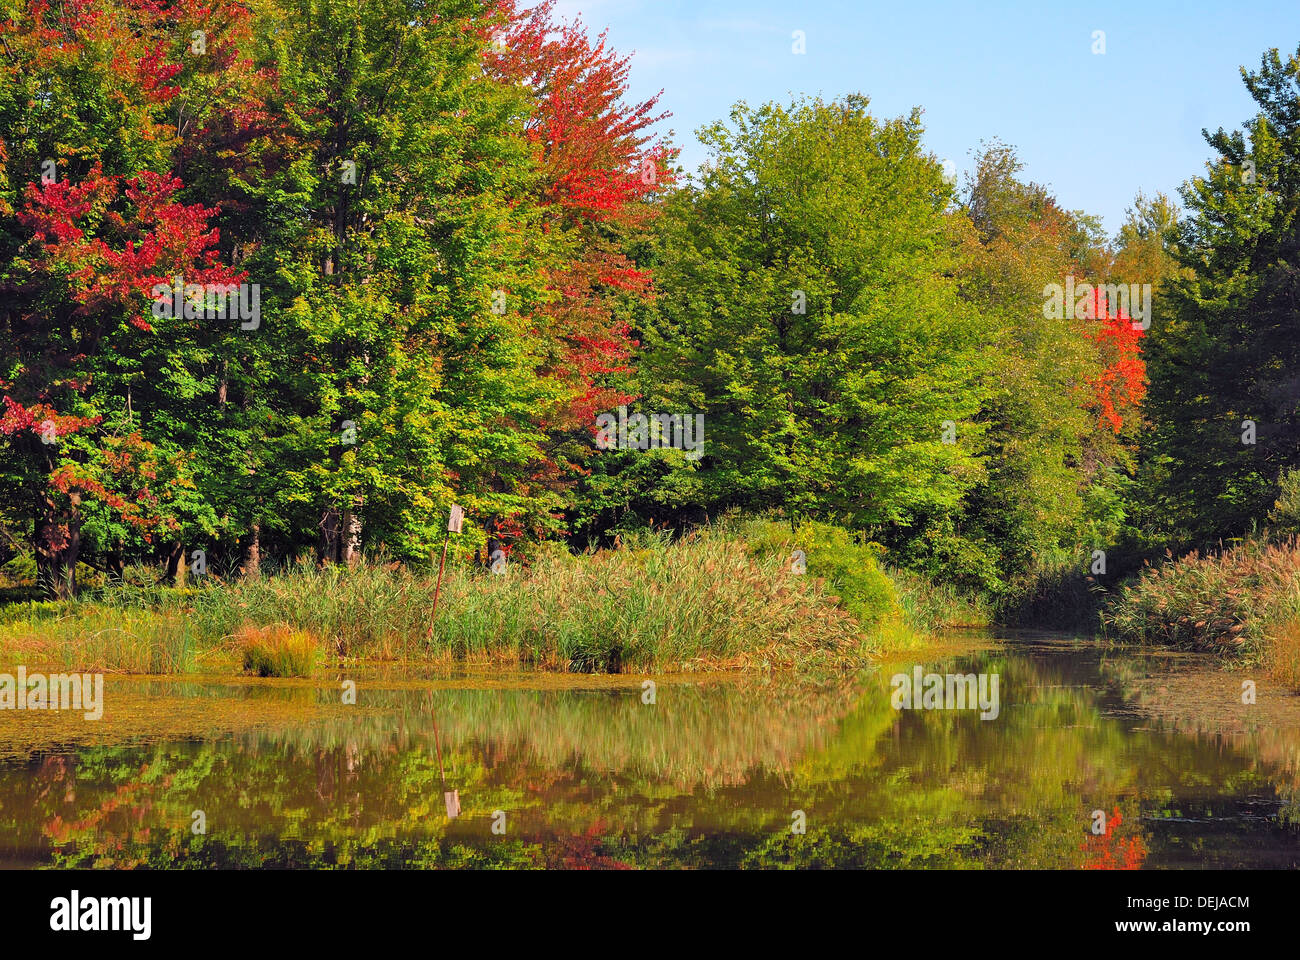 A green Swamp Landscape in the late summer season. - Stock Image